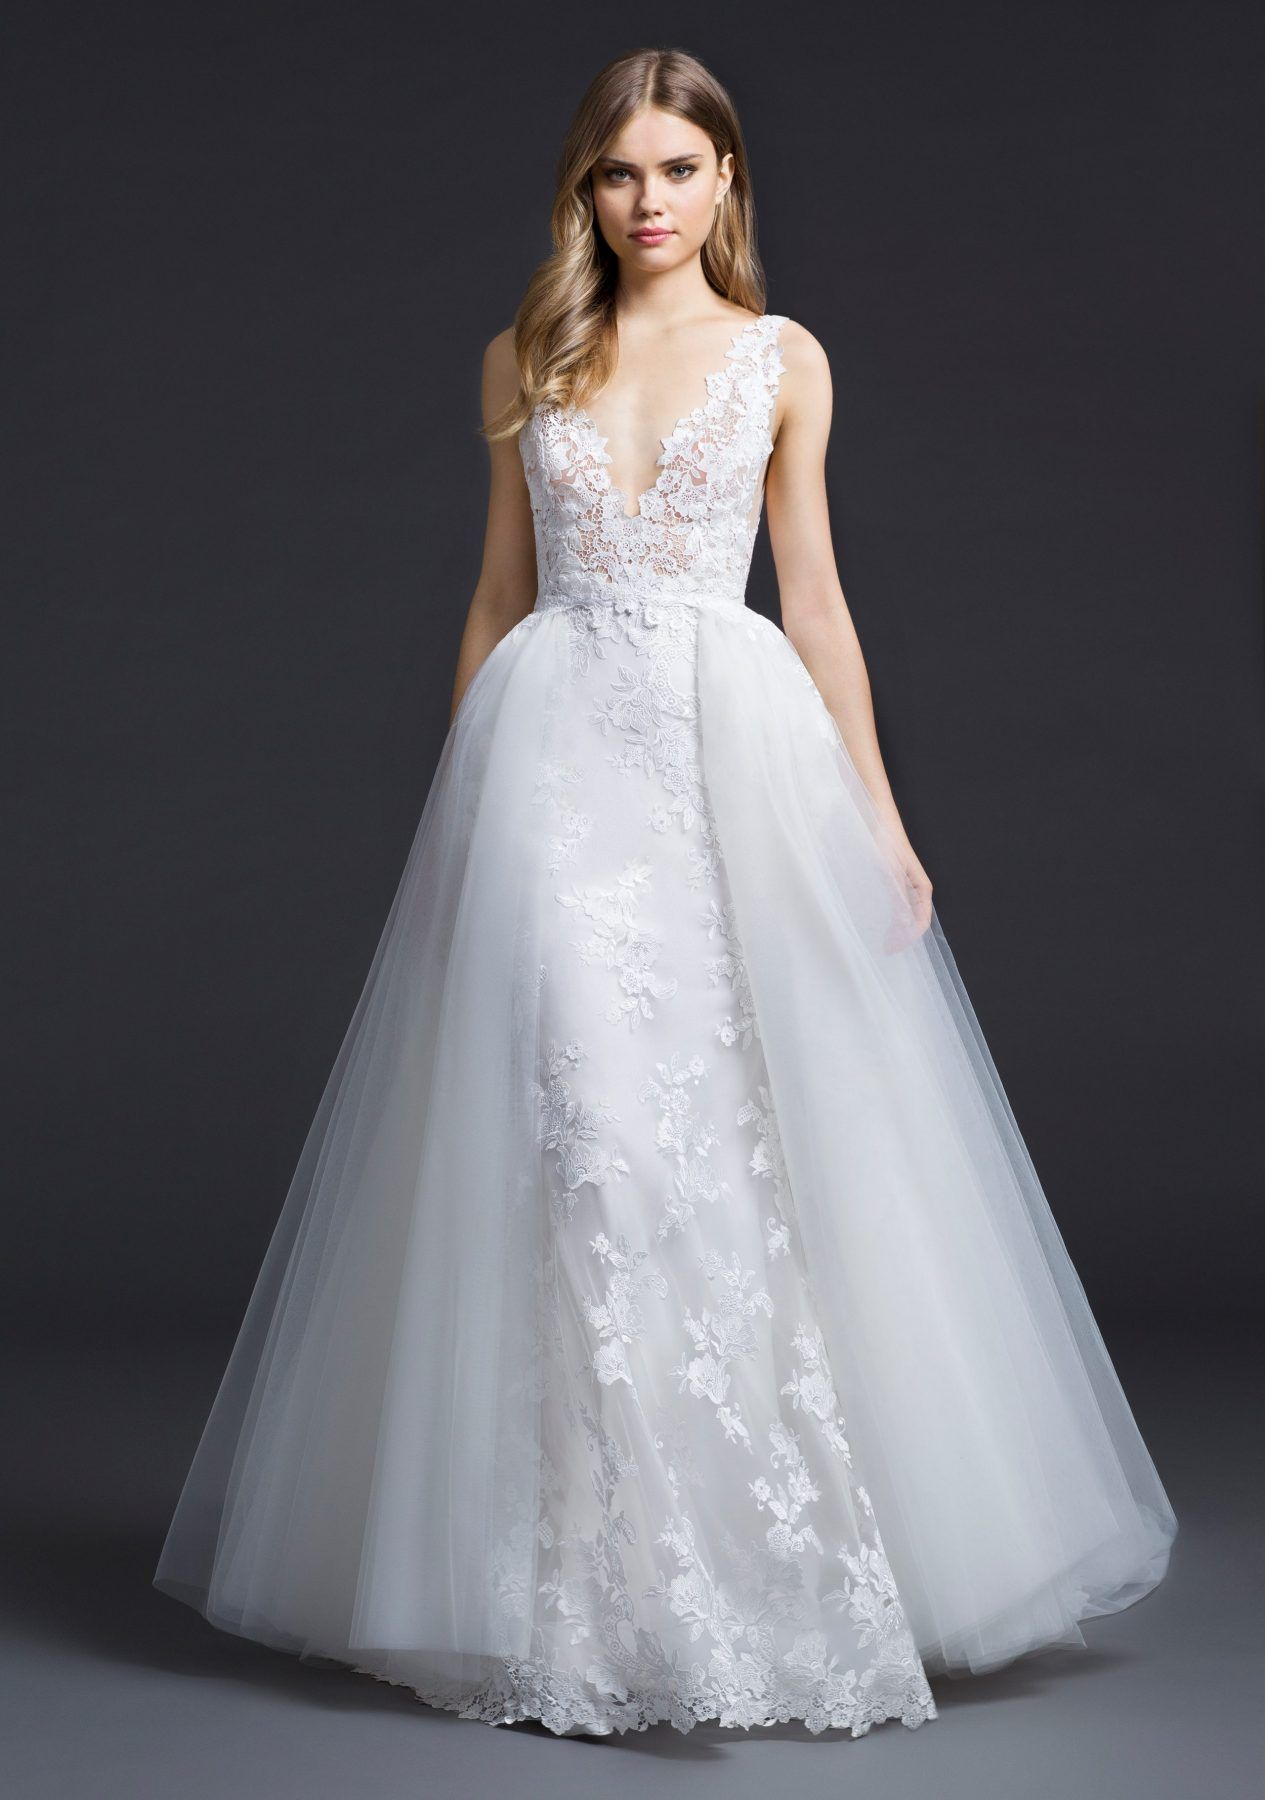 White puffy wedding dresses  Ball Gown Wedding Dress by Lazaro  Image   Say Yes to the Dress